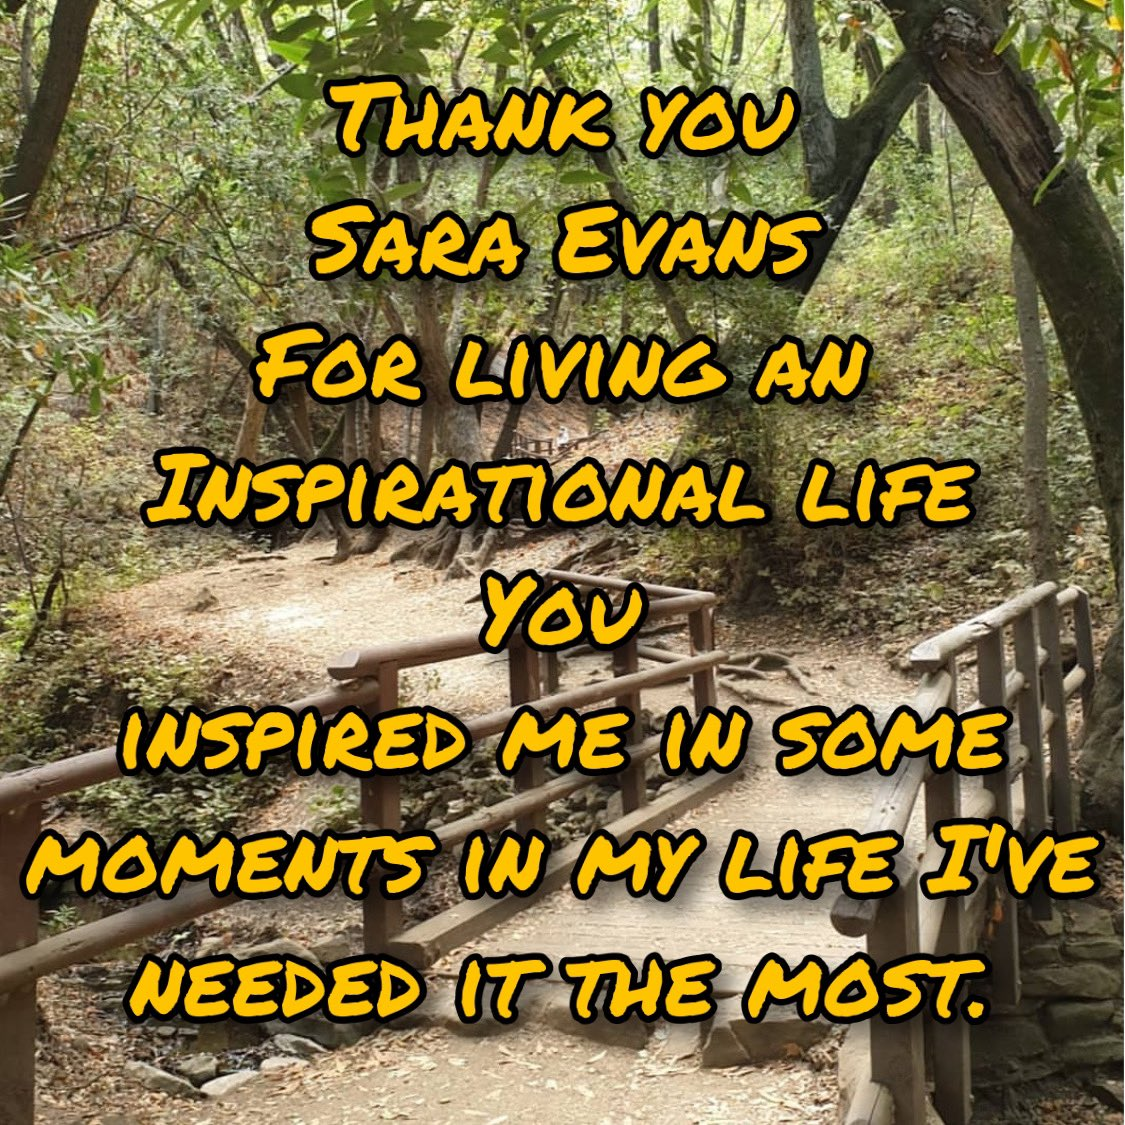 The inspiration to live life comes from so many. @saraevansmusic has been a source of survival for me. Her music has taught me that it's ok to not be ok right now but life has great things in store for me! Thank you Sara for inspiring me #SuicideIsNotTheAnswer #BeHereNow